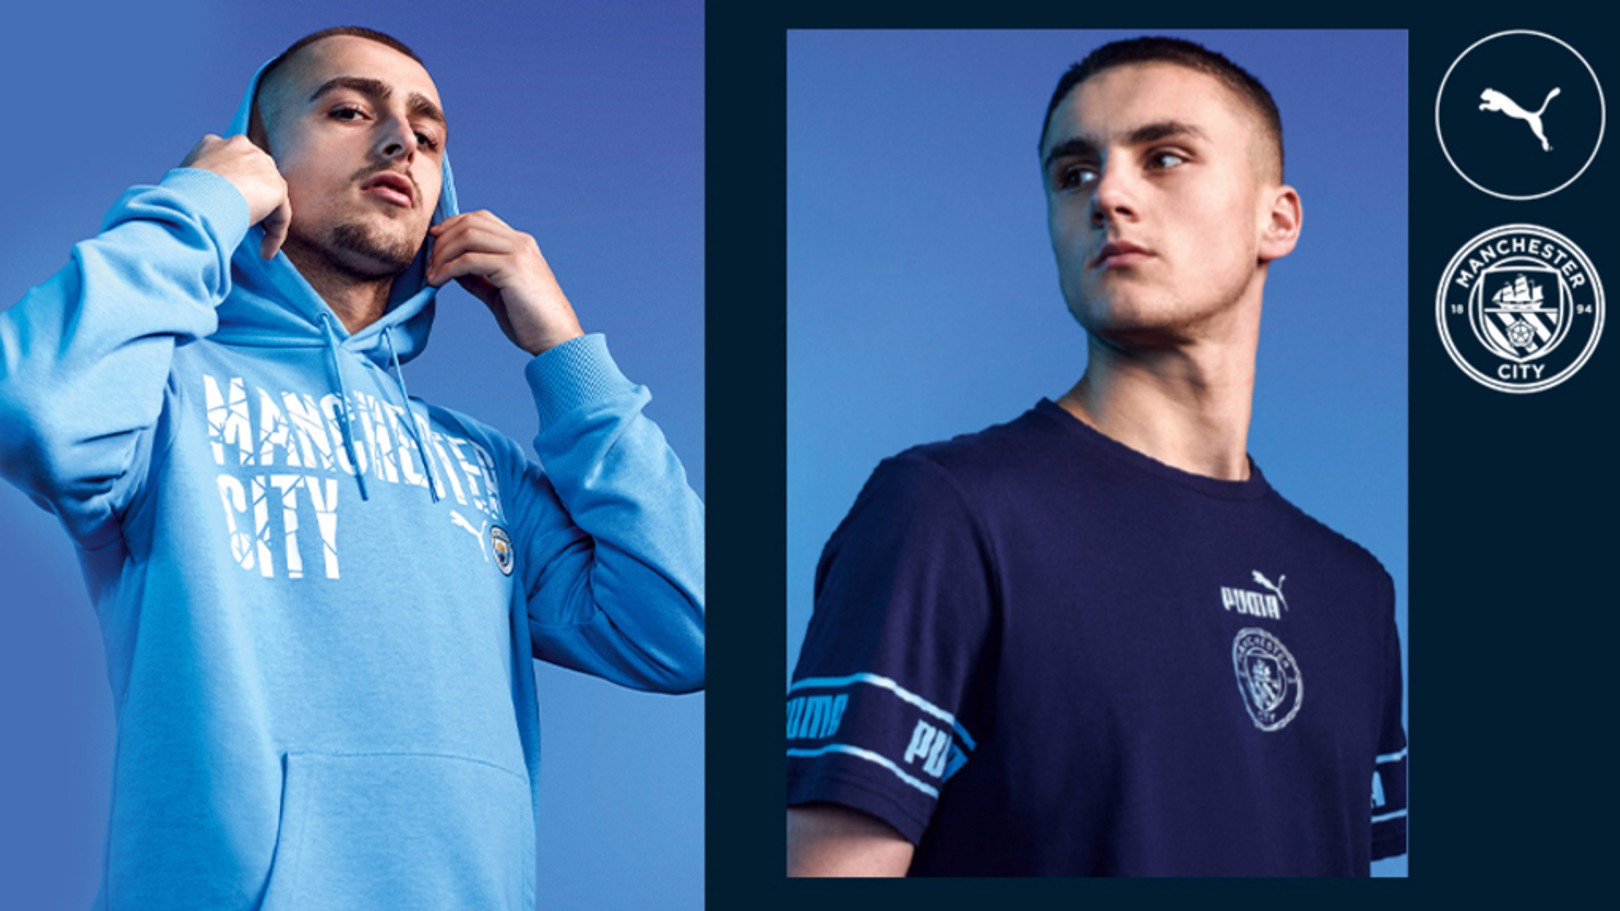 This Is Our City: Produk Fanwear Puma 2020/21!